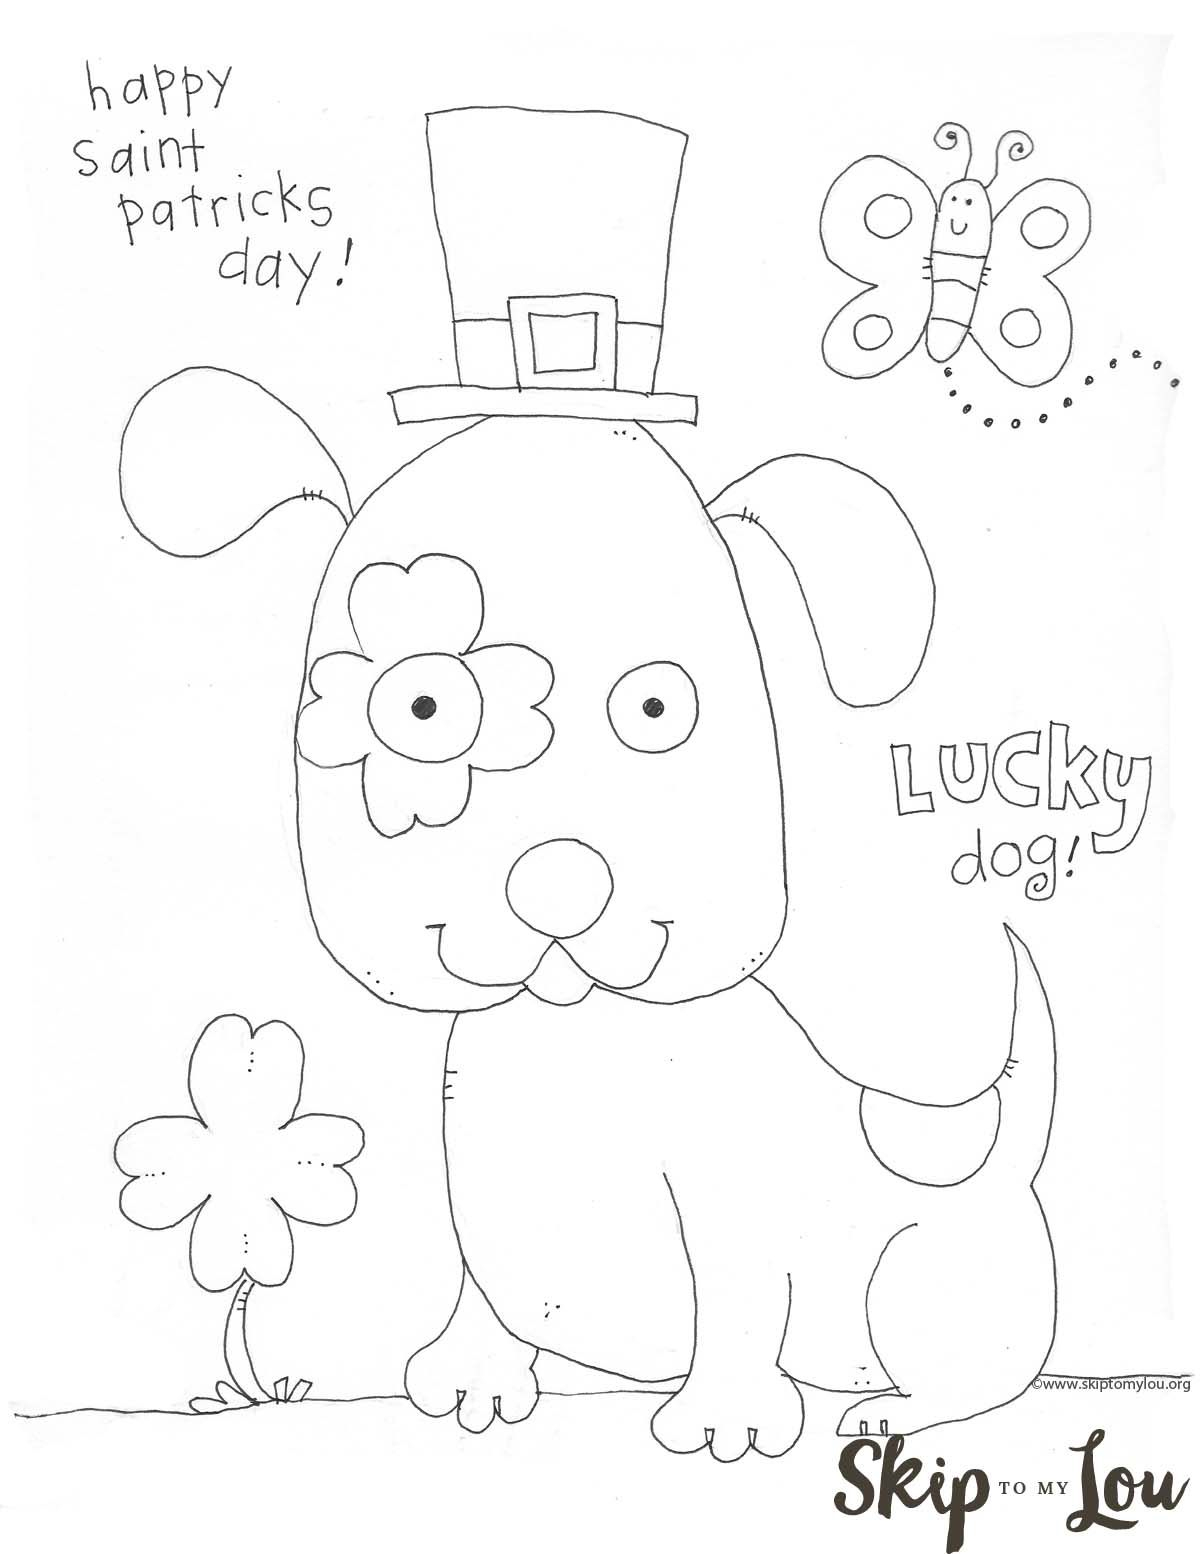 St. Patrick's Day Coloring Page Preschool- Free Printable | St - Free Printable St Patrick Day Coloring Pages